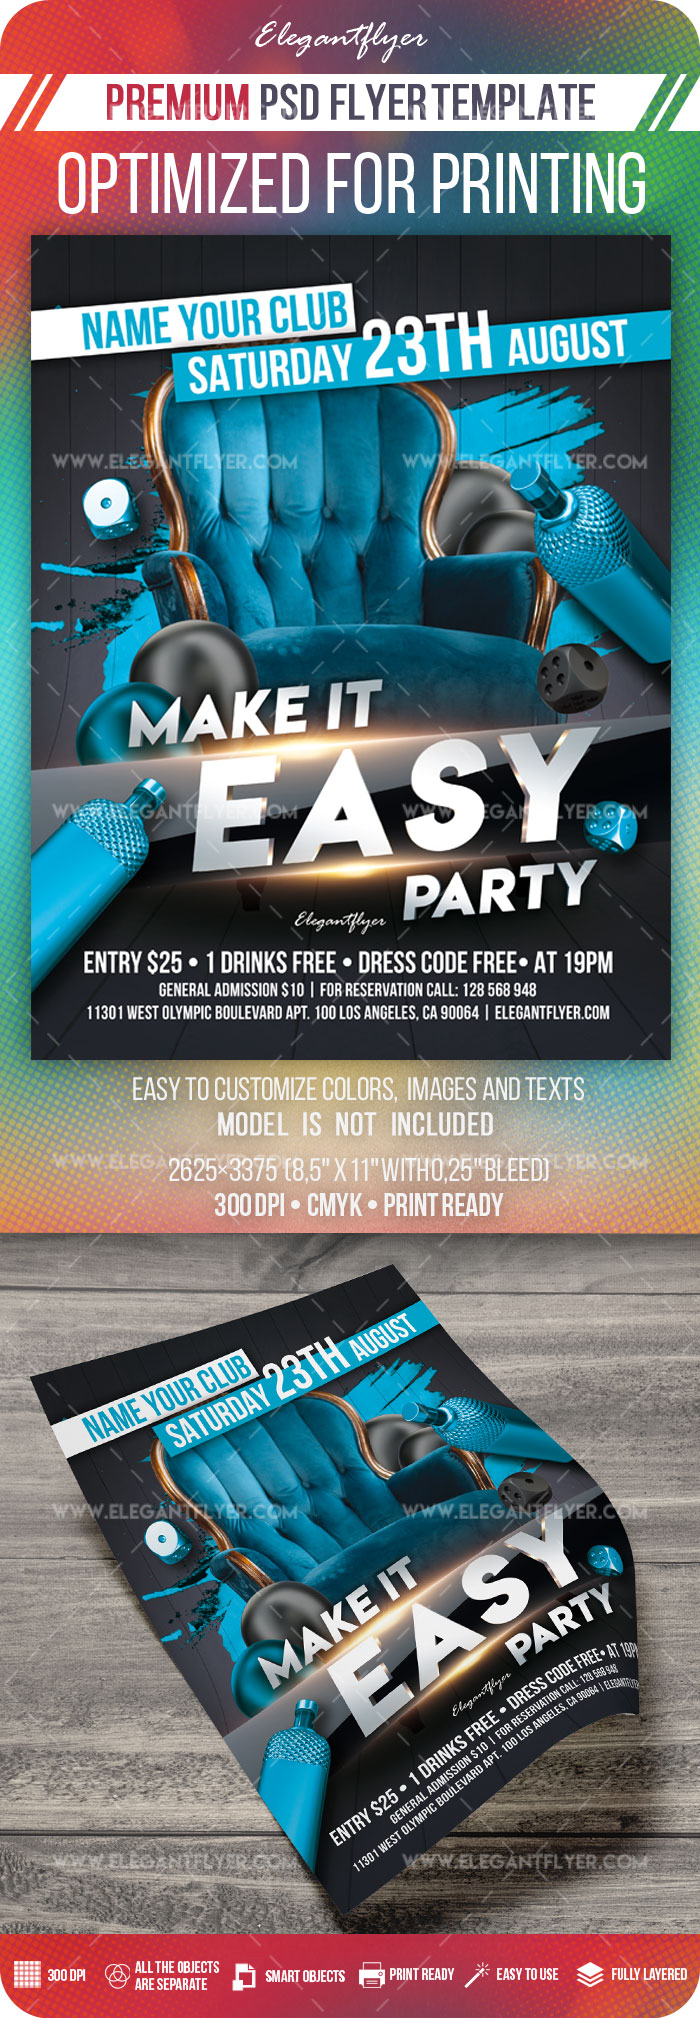 Make it Easy Party – PSD Flyer Template